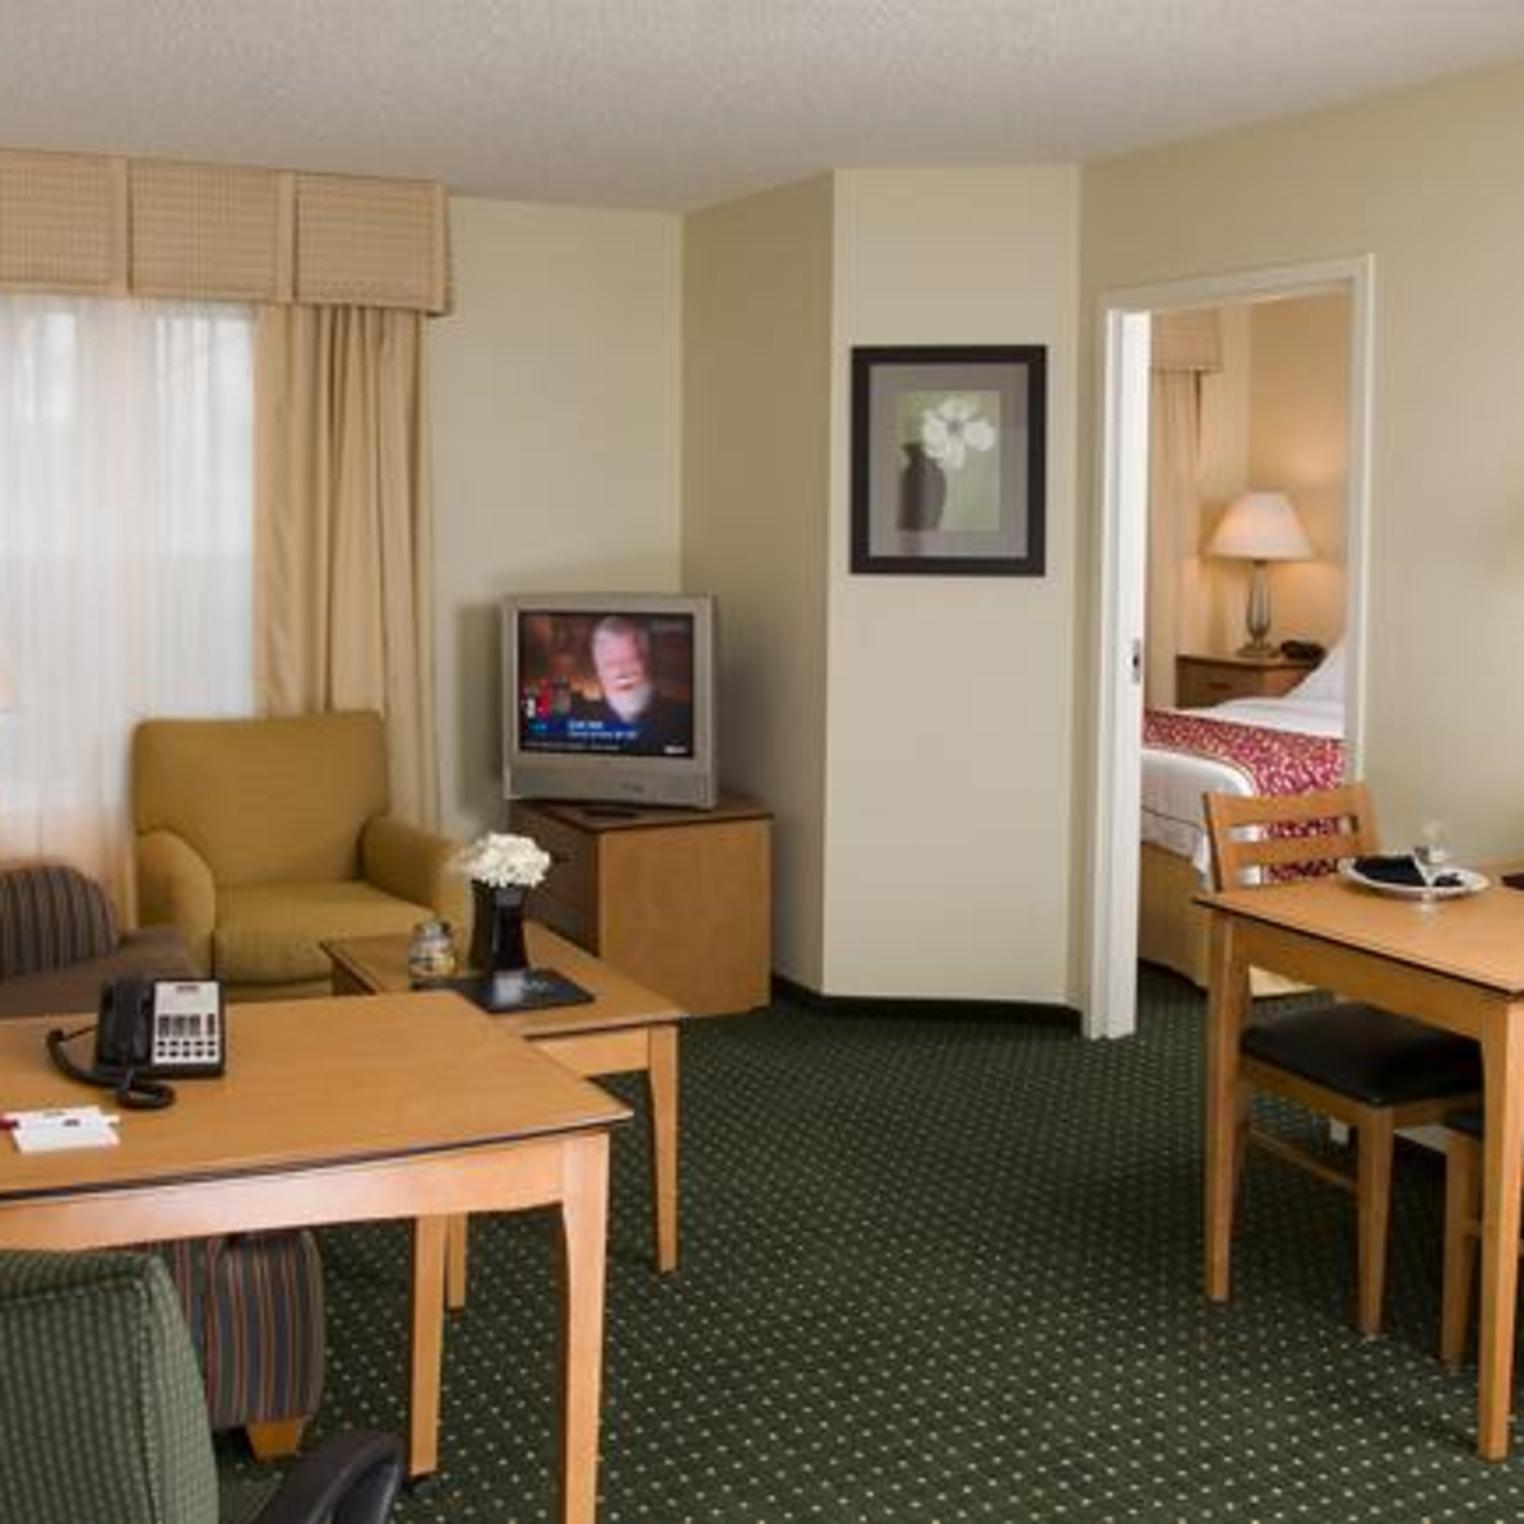 Residence Inn by Marriott Harrisburg Carlisle One Bedroom Suite Living/Dining Room Area